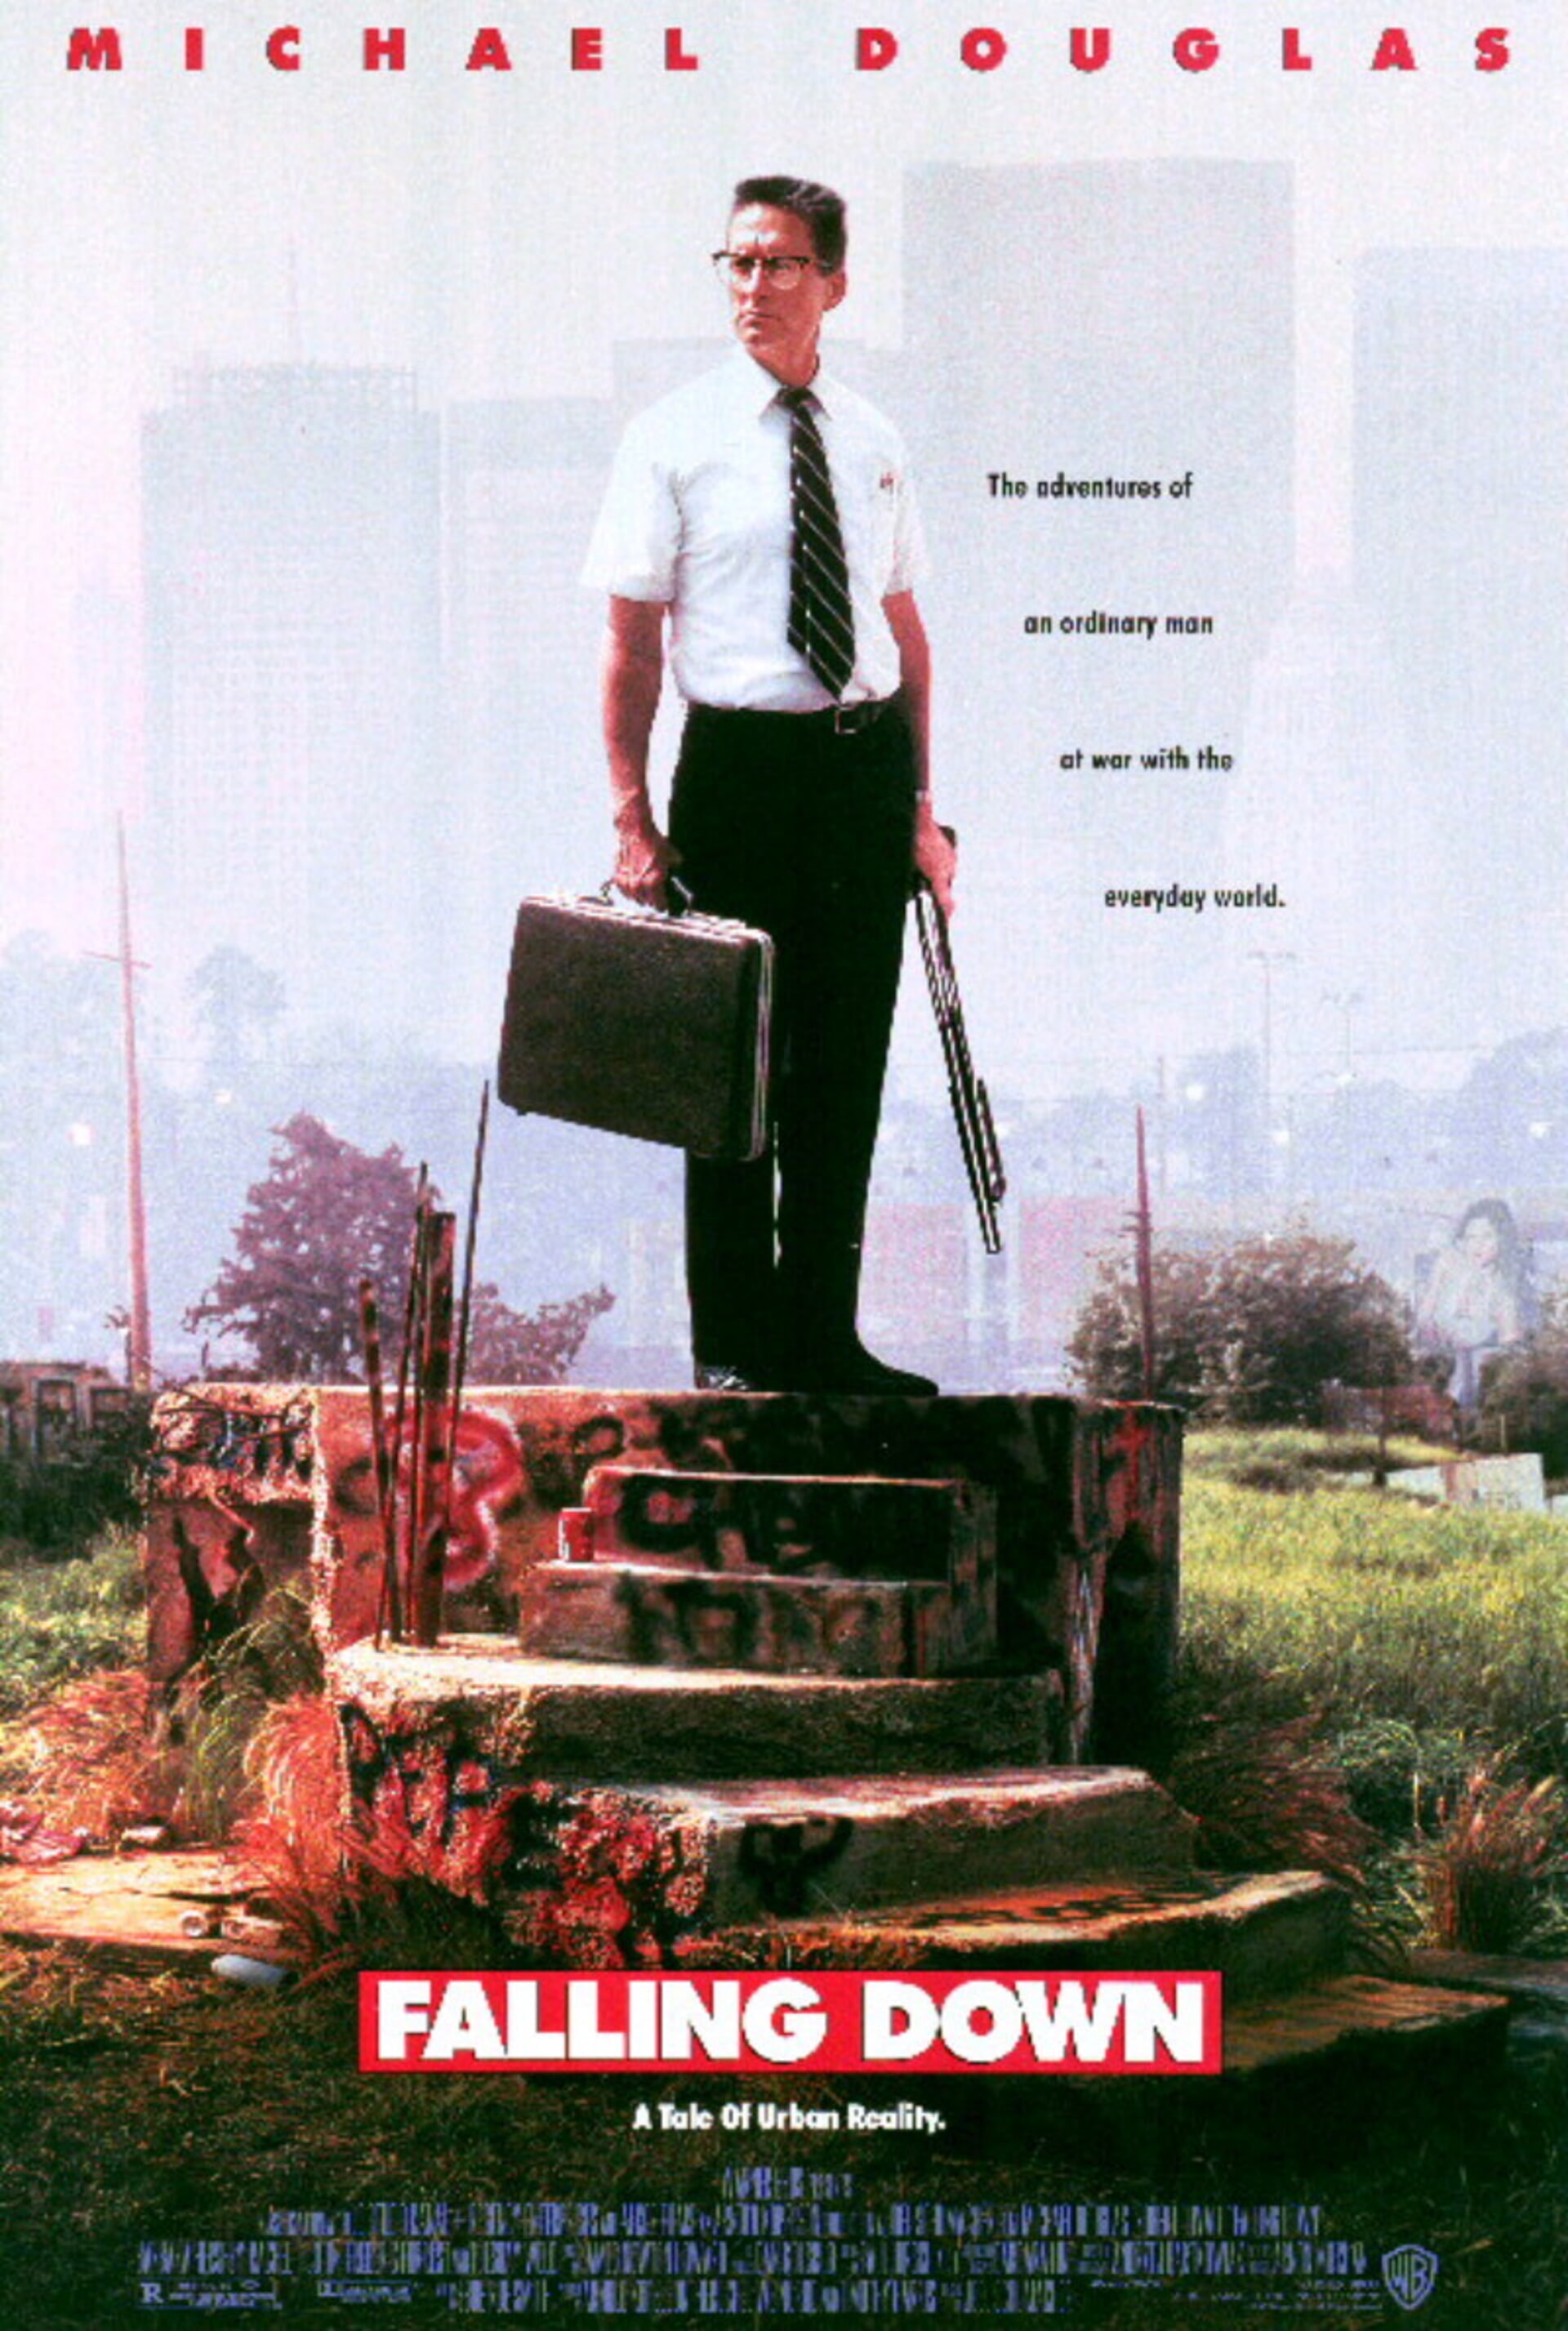 Falling Down - Poster 1